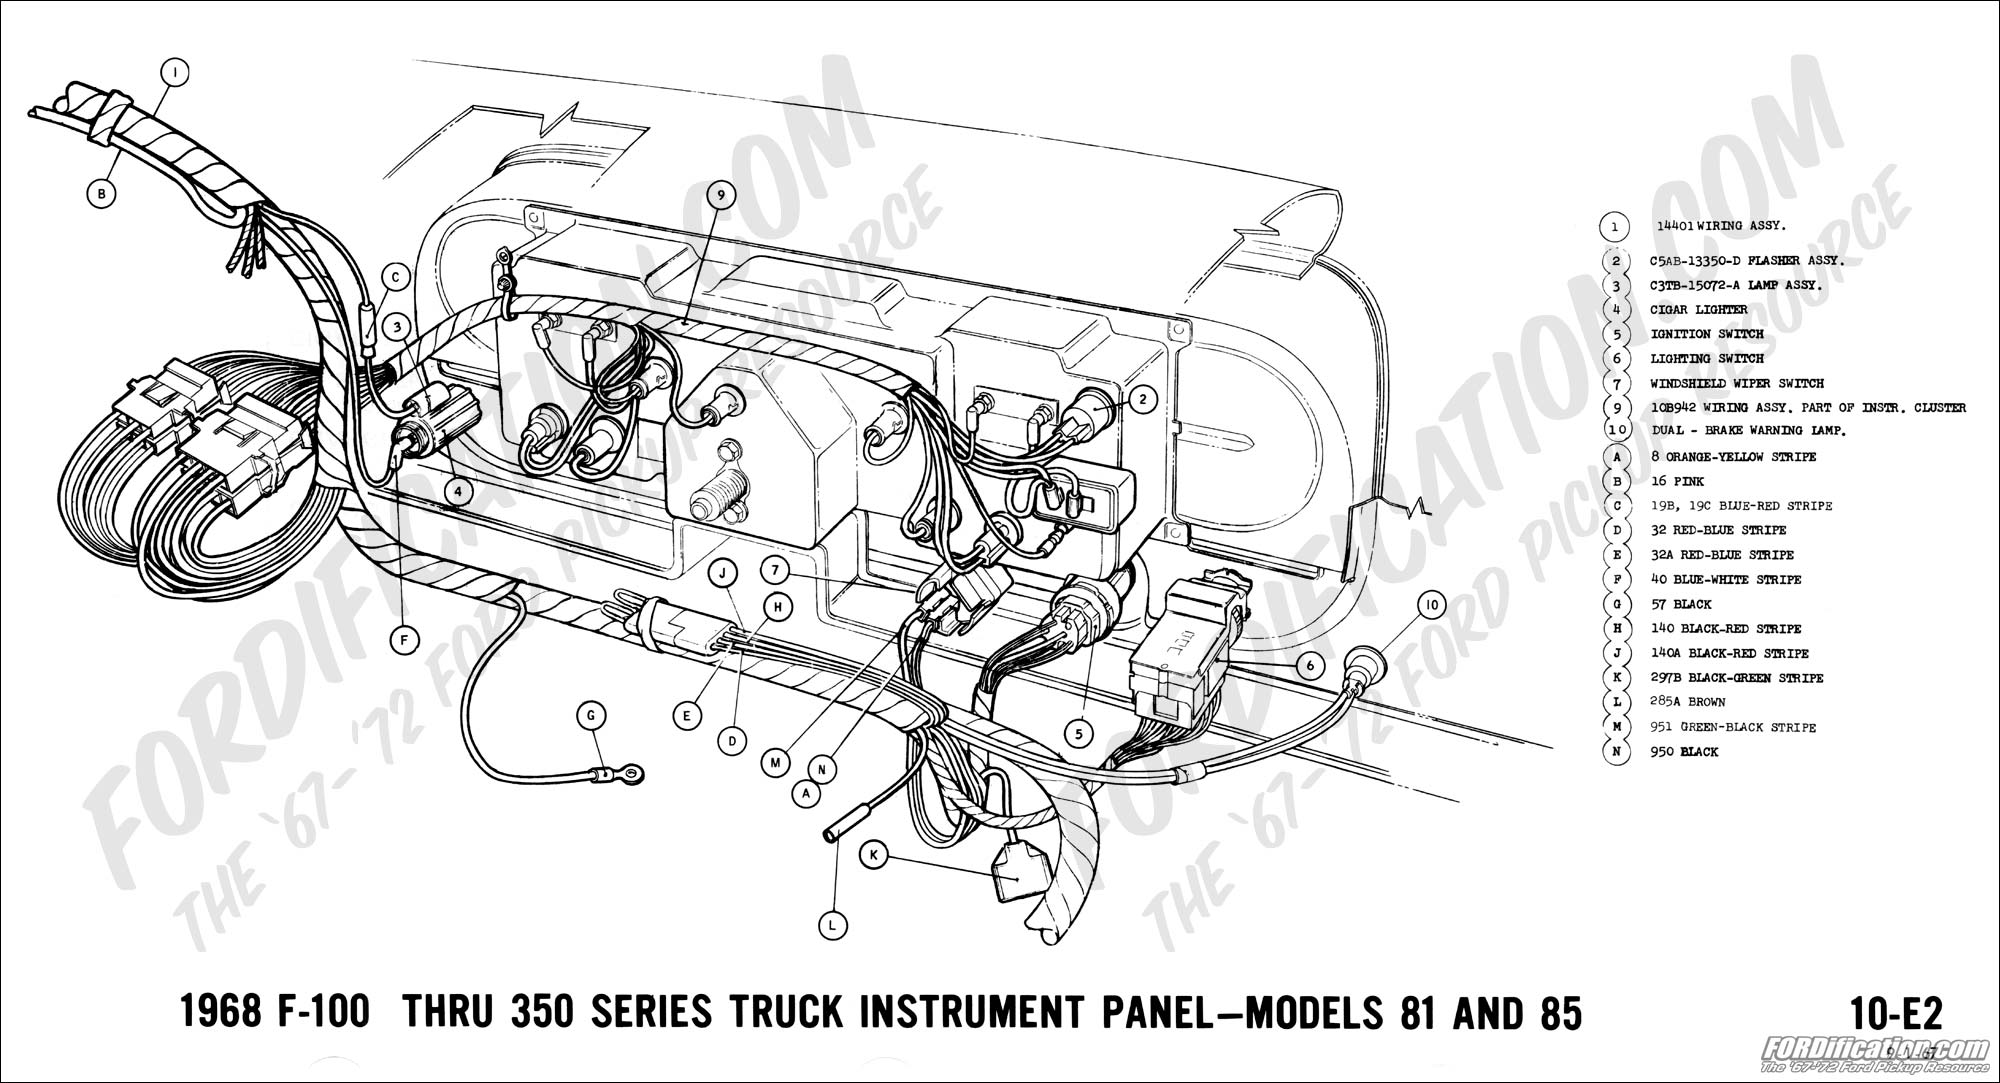 ford truck technical drawings and schematics section h wiring 1980 Mustang Wiring Diagram  1971 Mustang Wiring Harness 1969 Cougar Diagrams 67 Mustang Ignition Wiring Diagram